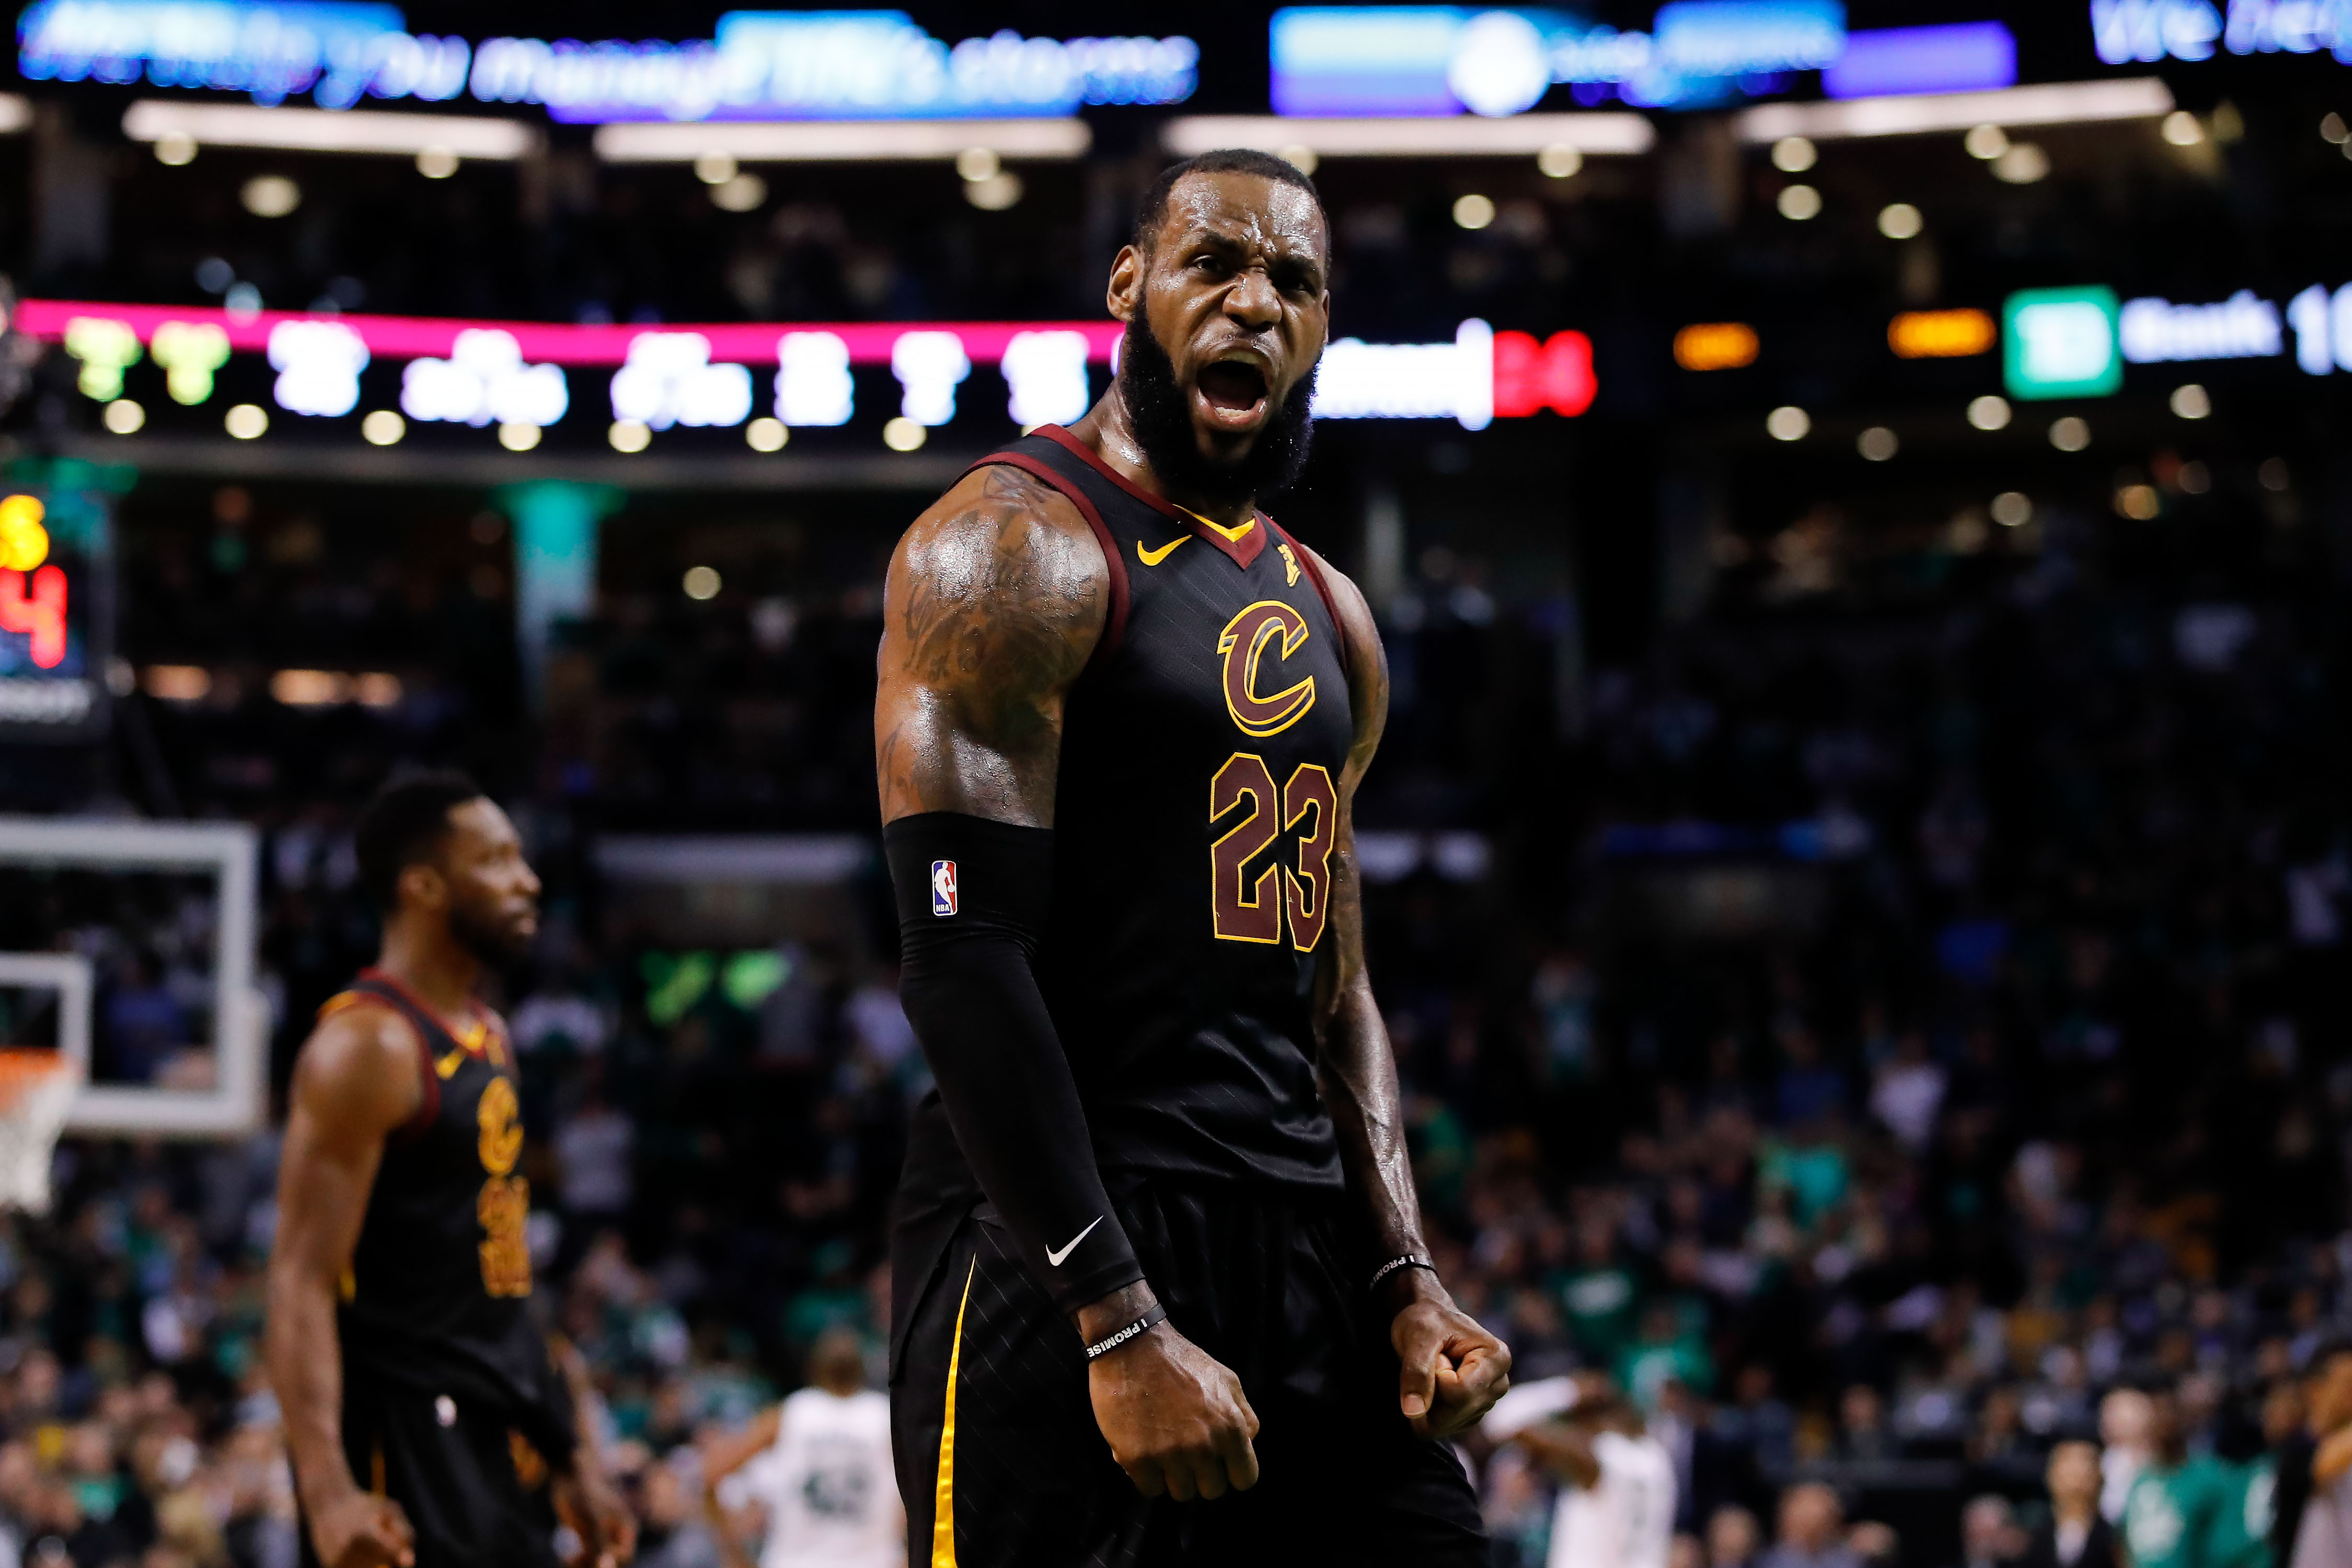 May 27, 2018; Boston, MA, USA; Cleveland Cavaliers forward LeBron James (23) celebrates after drawing foul against the Boston Celtics during the fourth quarter in game seven of the Eastern conference finals of the 2018 NBA Playoffs at TD Garden. Mandatory Credit: David Butler II-USA TODAY Sports